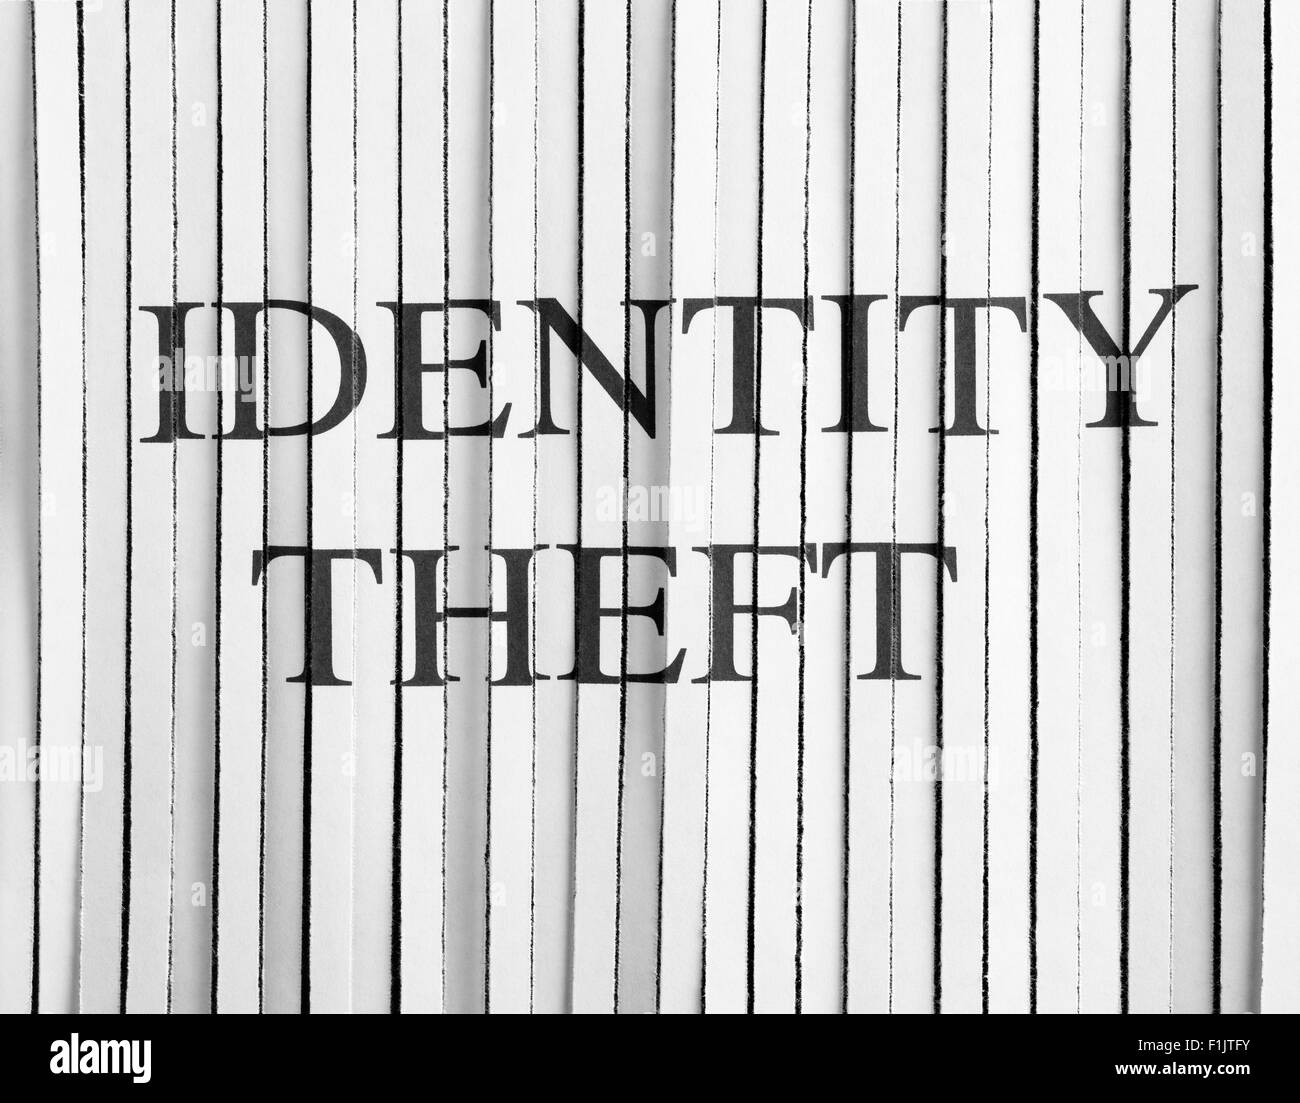 Shredded Paper with identity theft - Stock Image